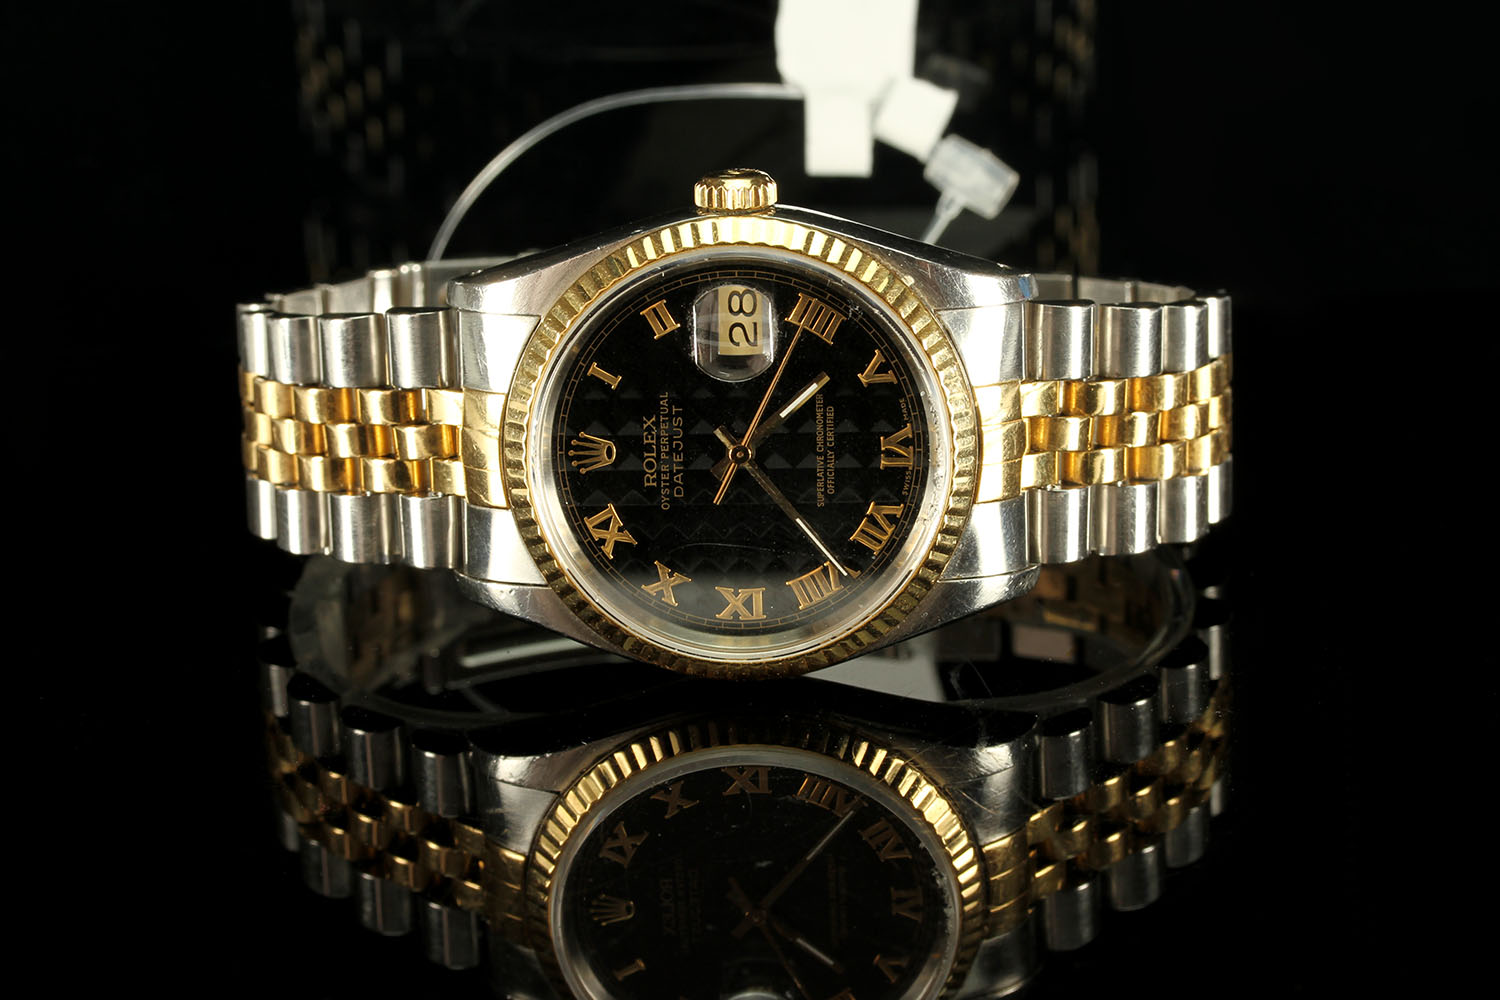 GENTLEMANS ROLEX DATEJUST MODEL 16233, SN X15.... , CIRCA 1991, round, black pyramid dial with